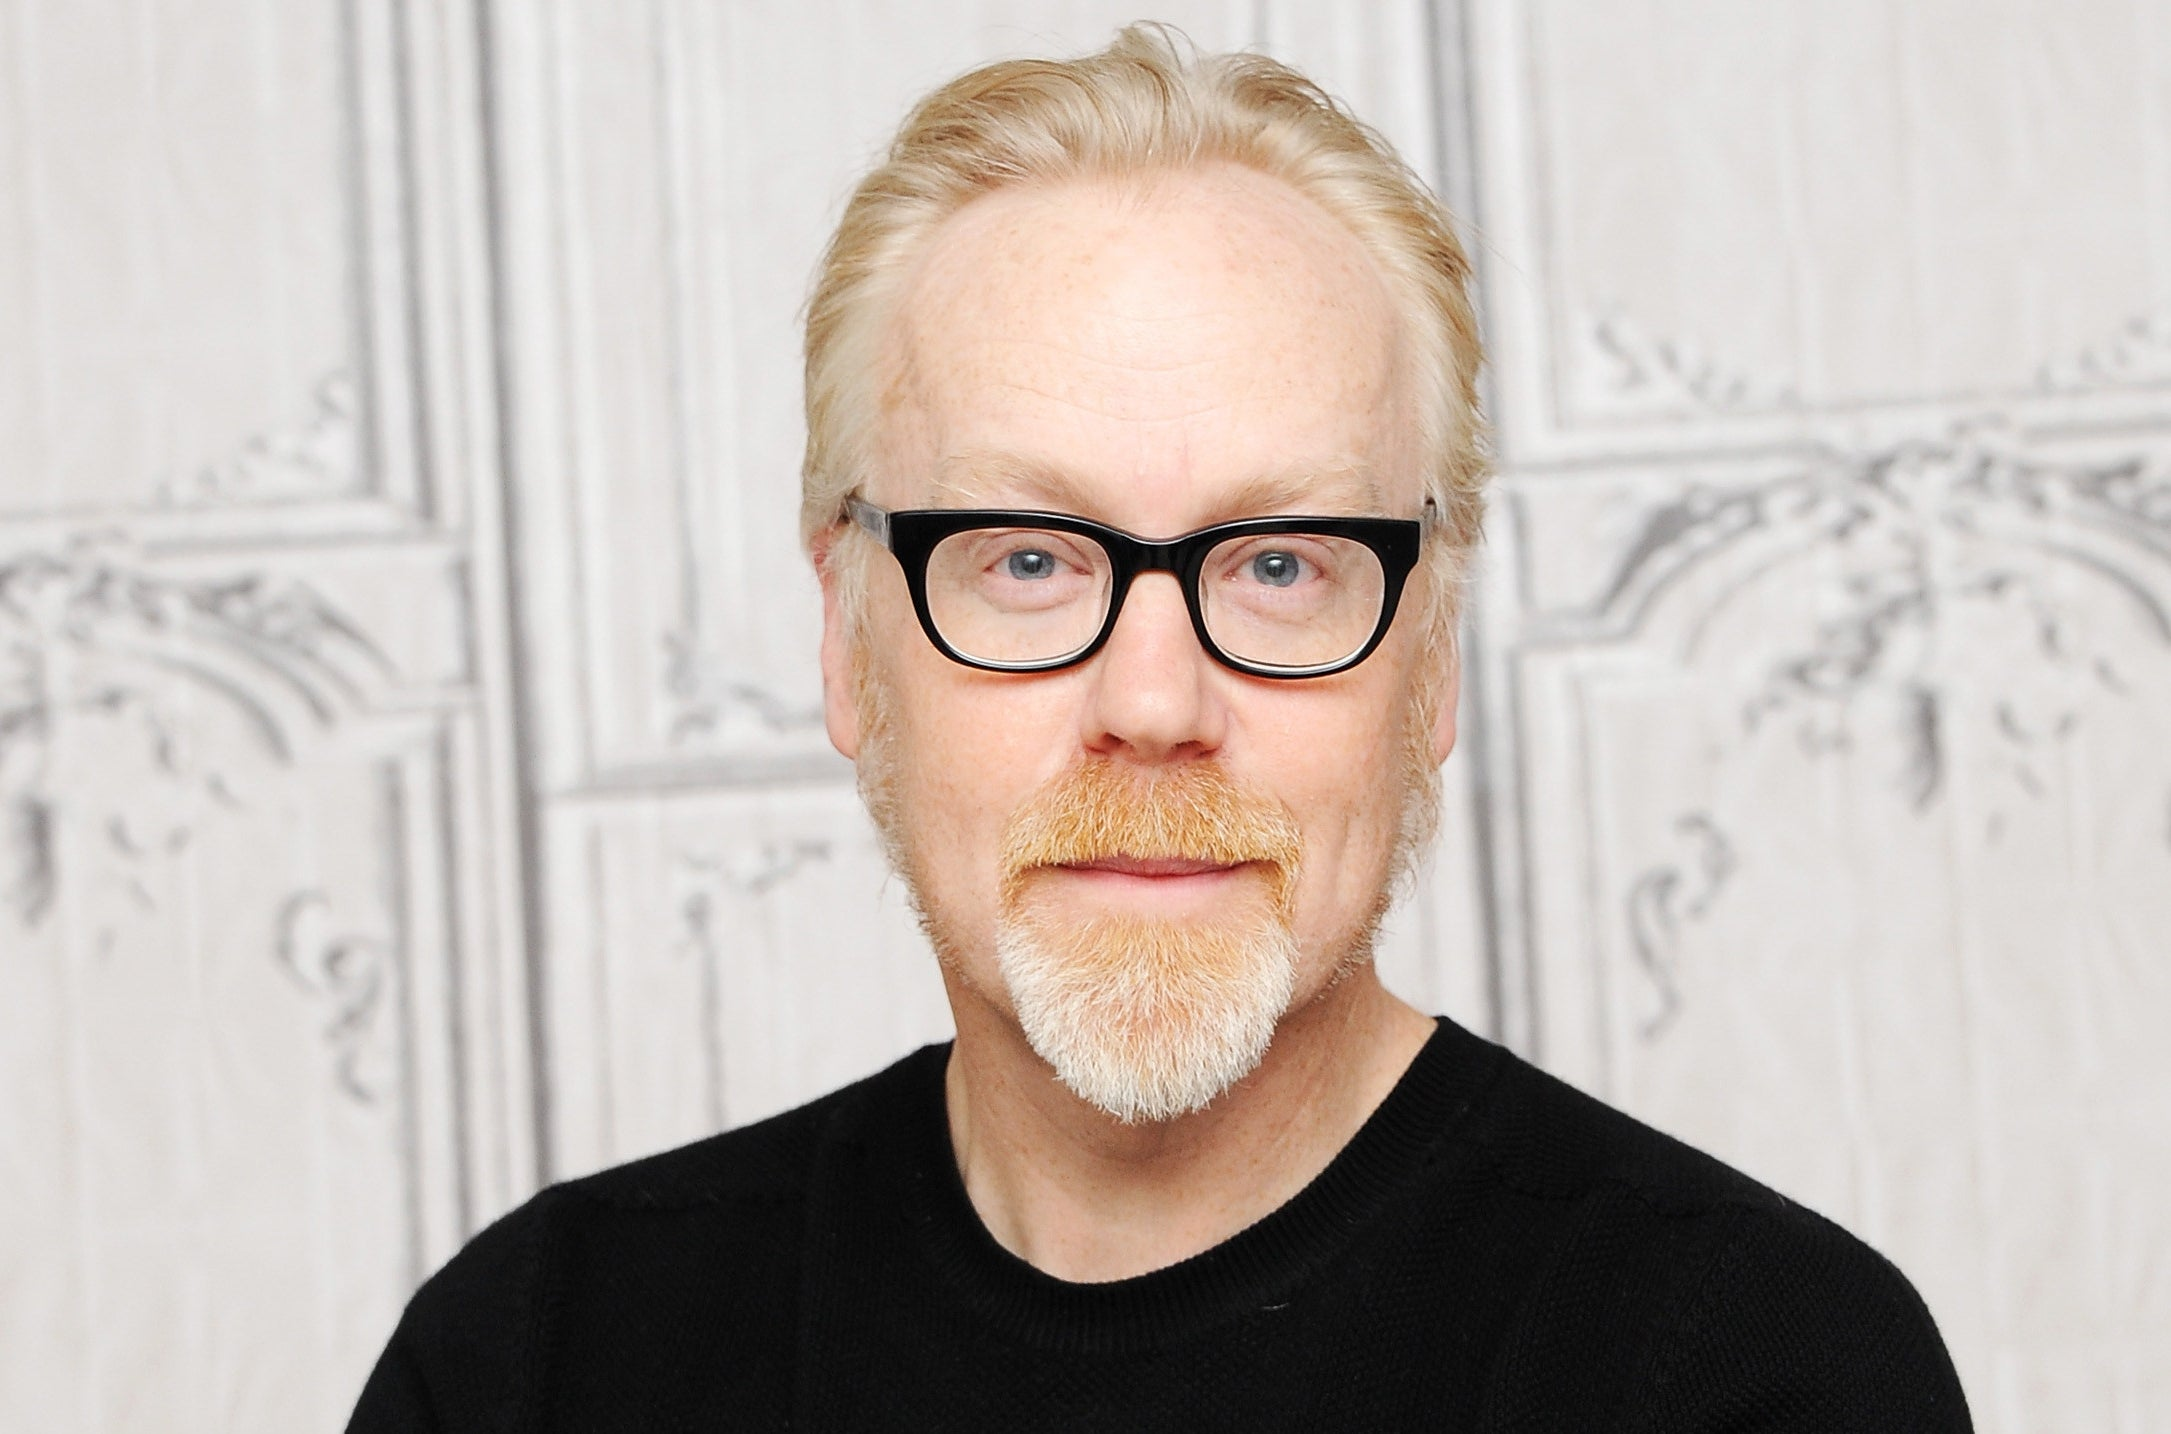 Headshot-style photo of Adam Savage in a black shirt and glasses